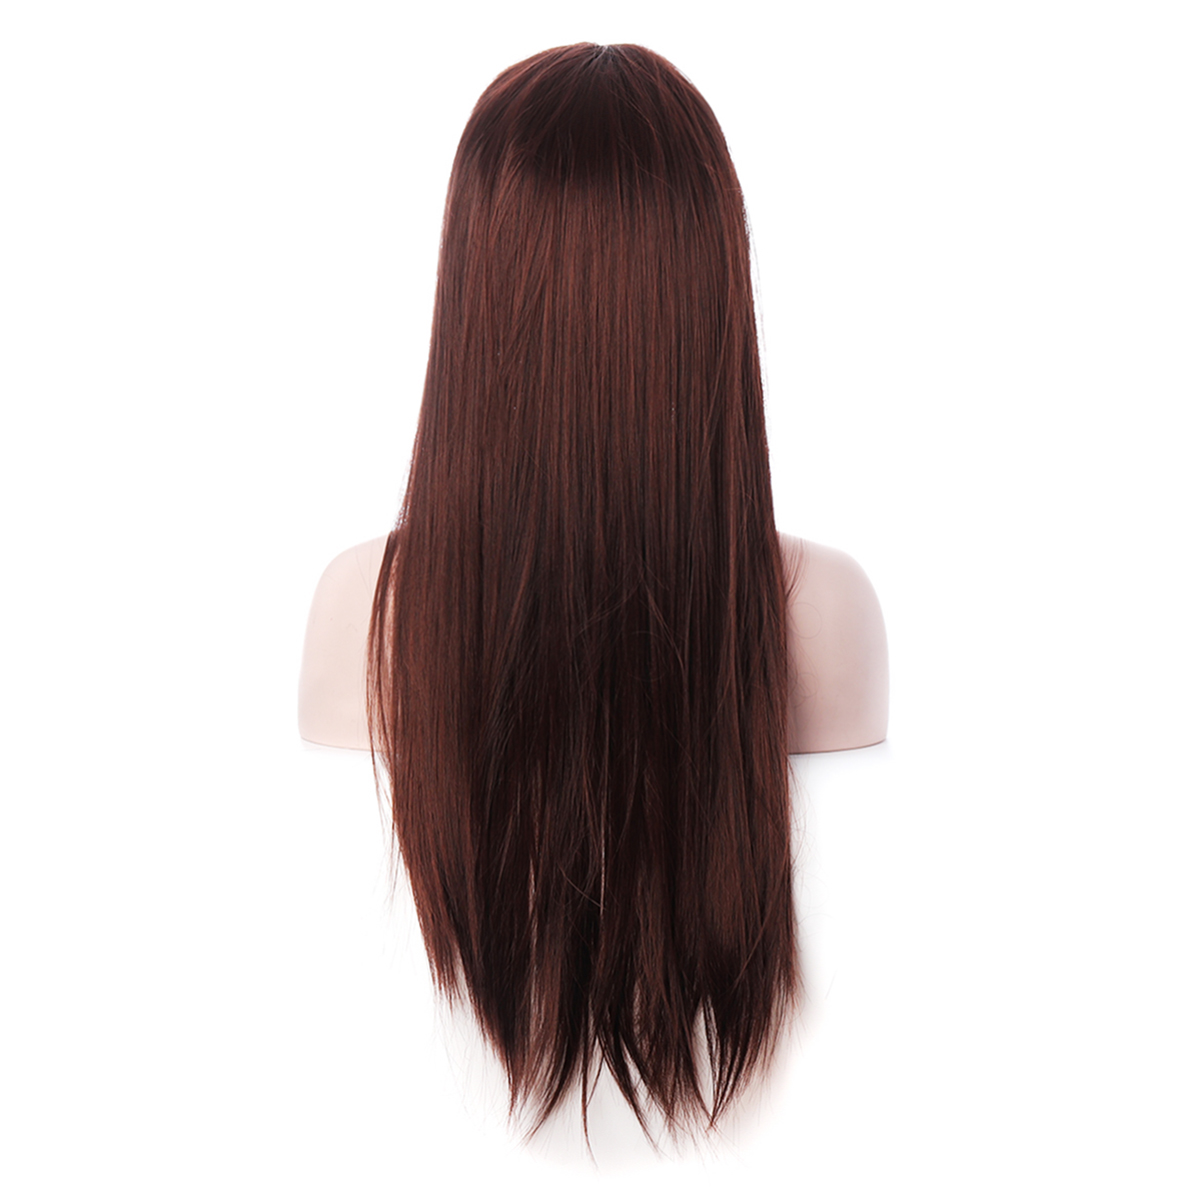 Long Straight Wigs Accessory For Cosplay Anime